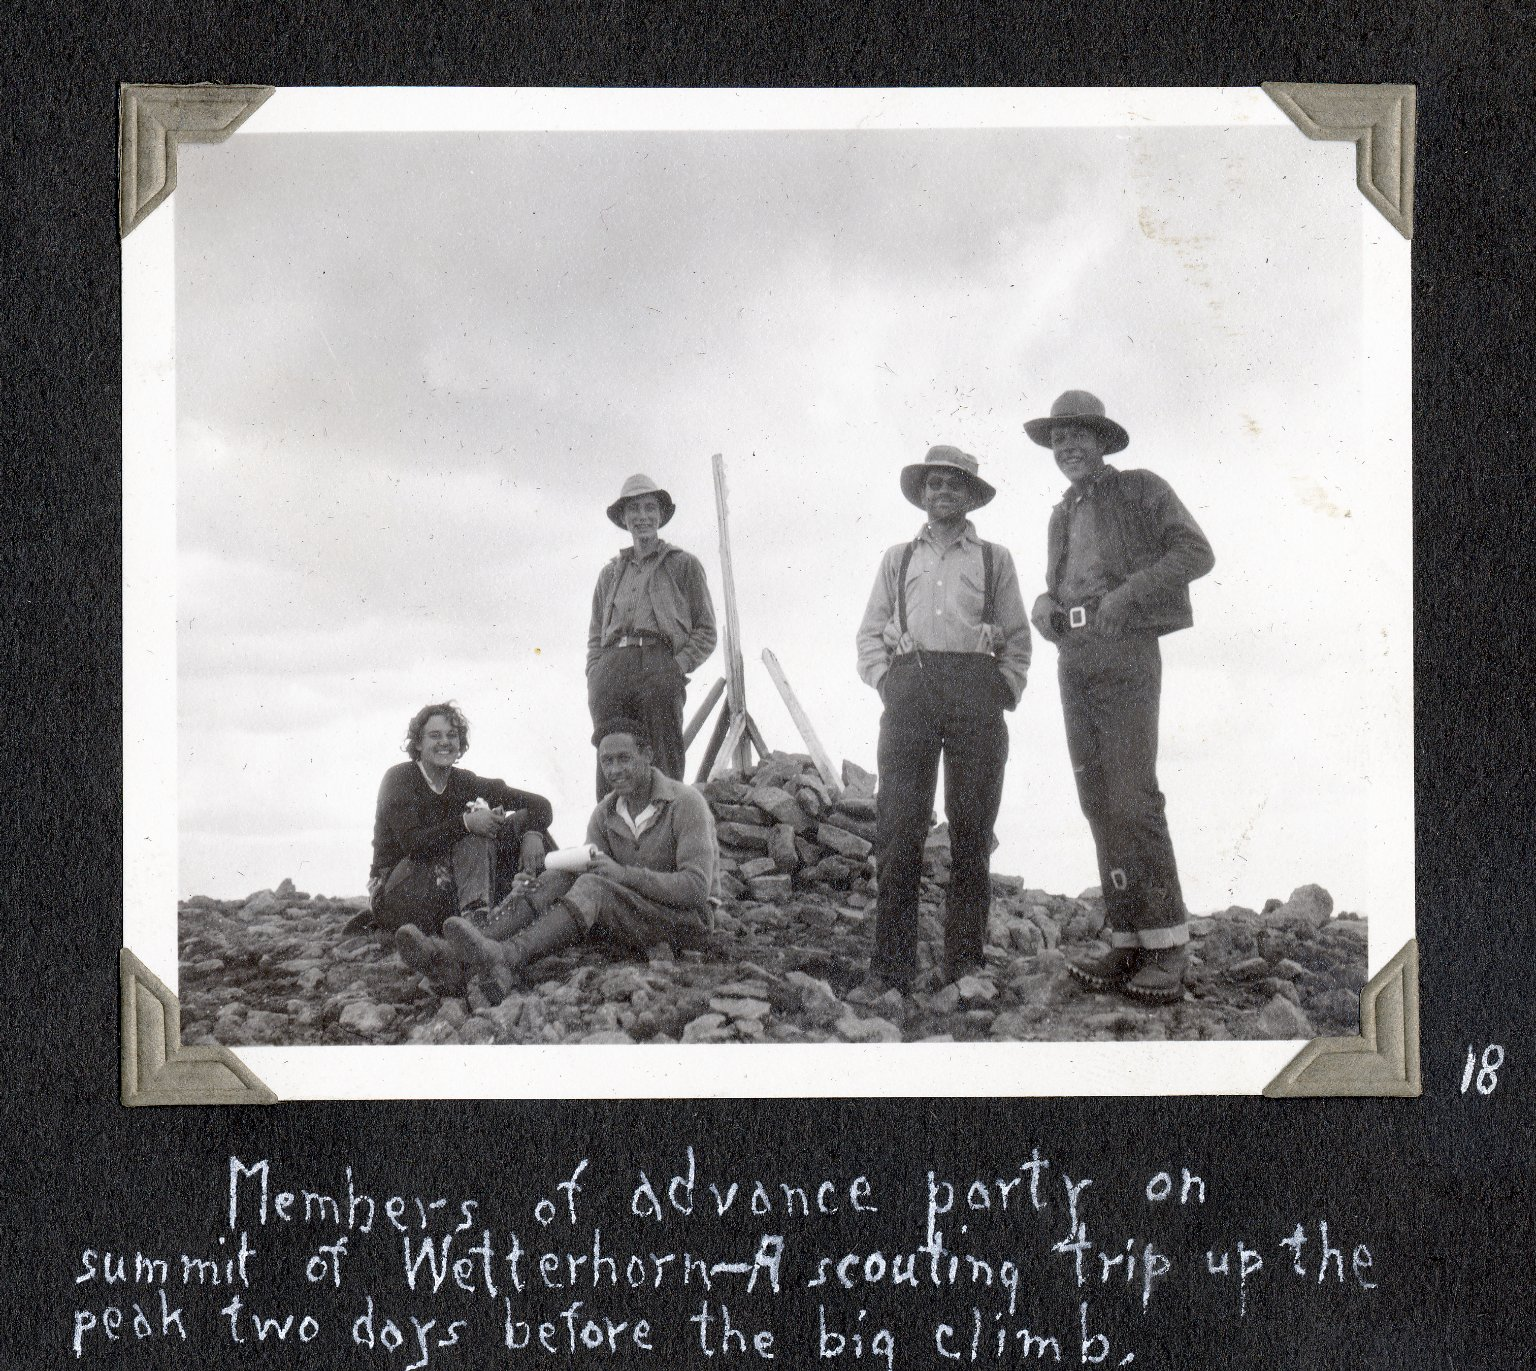 Advance scouting group on summit of Wetterhorn Peak